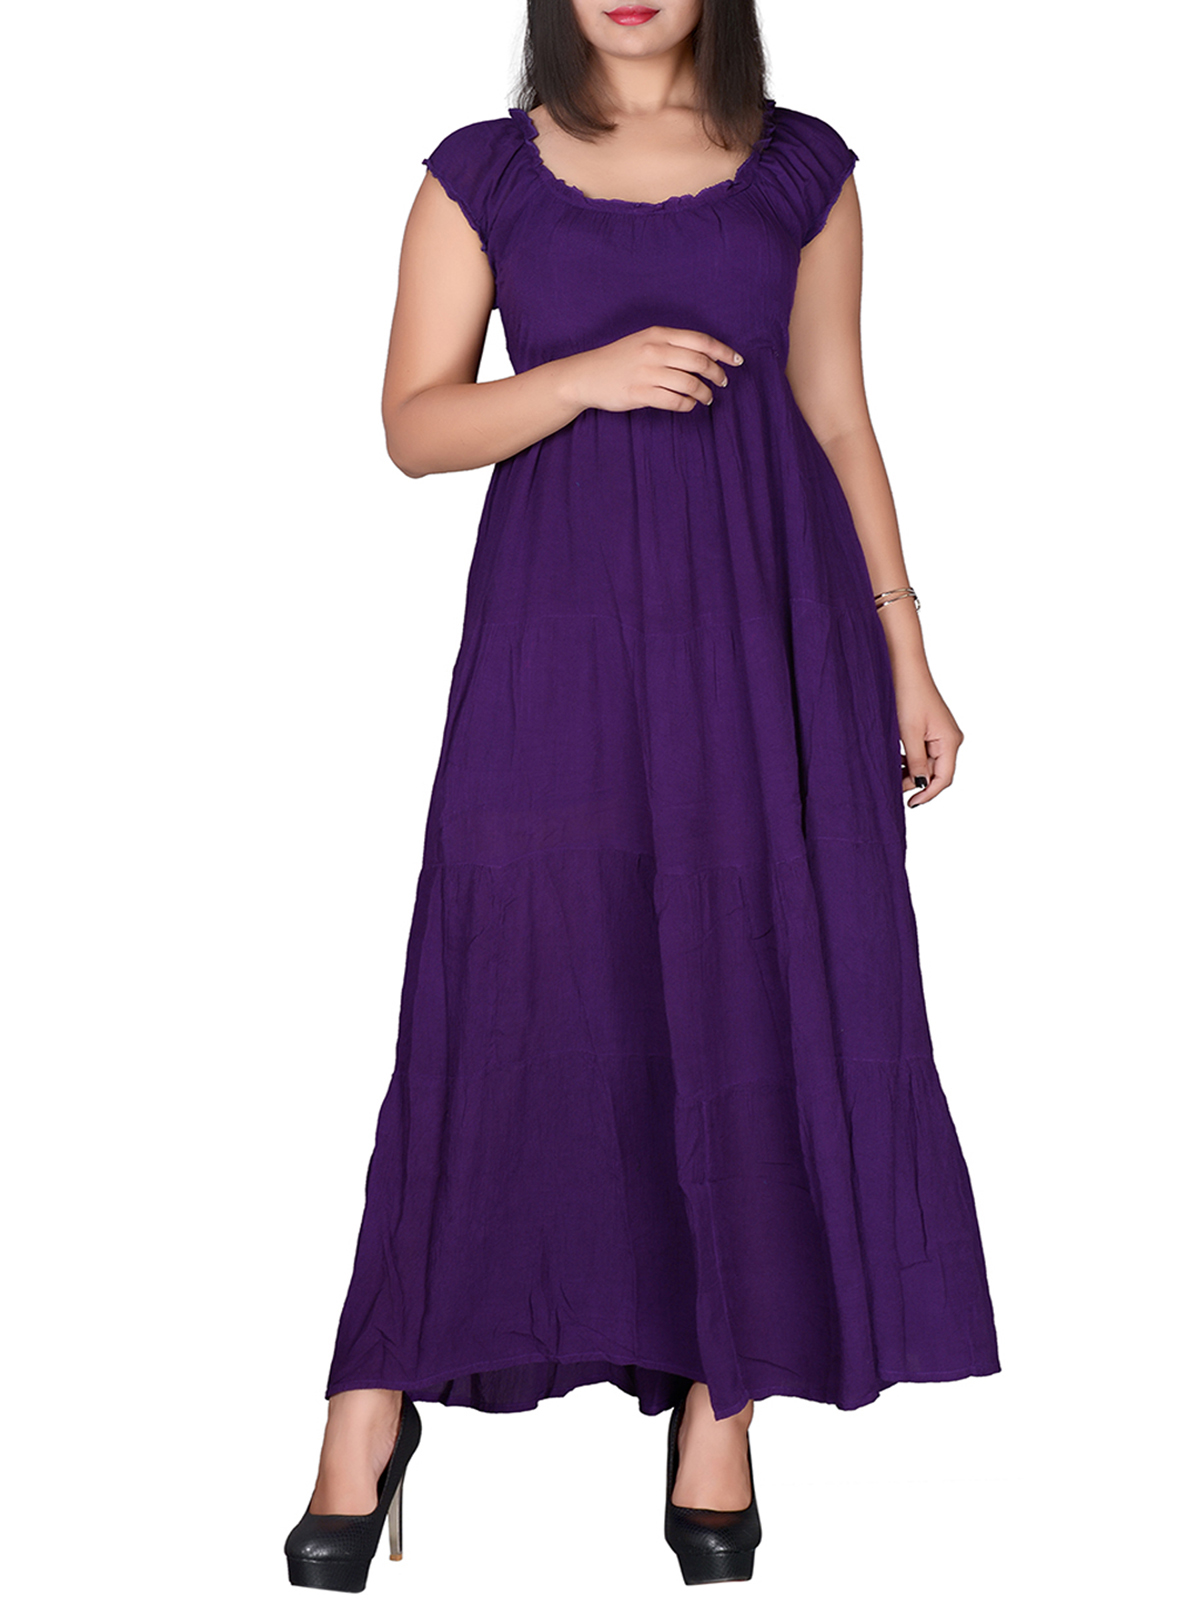 Phase eight maxi dress 14-16